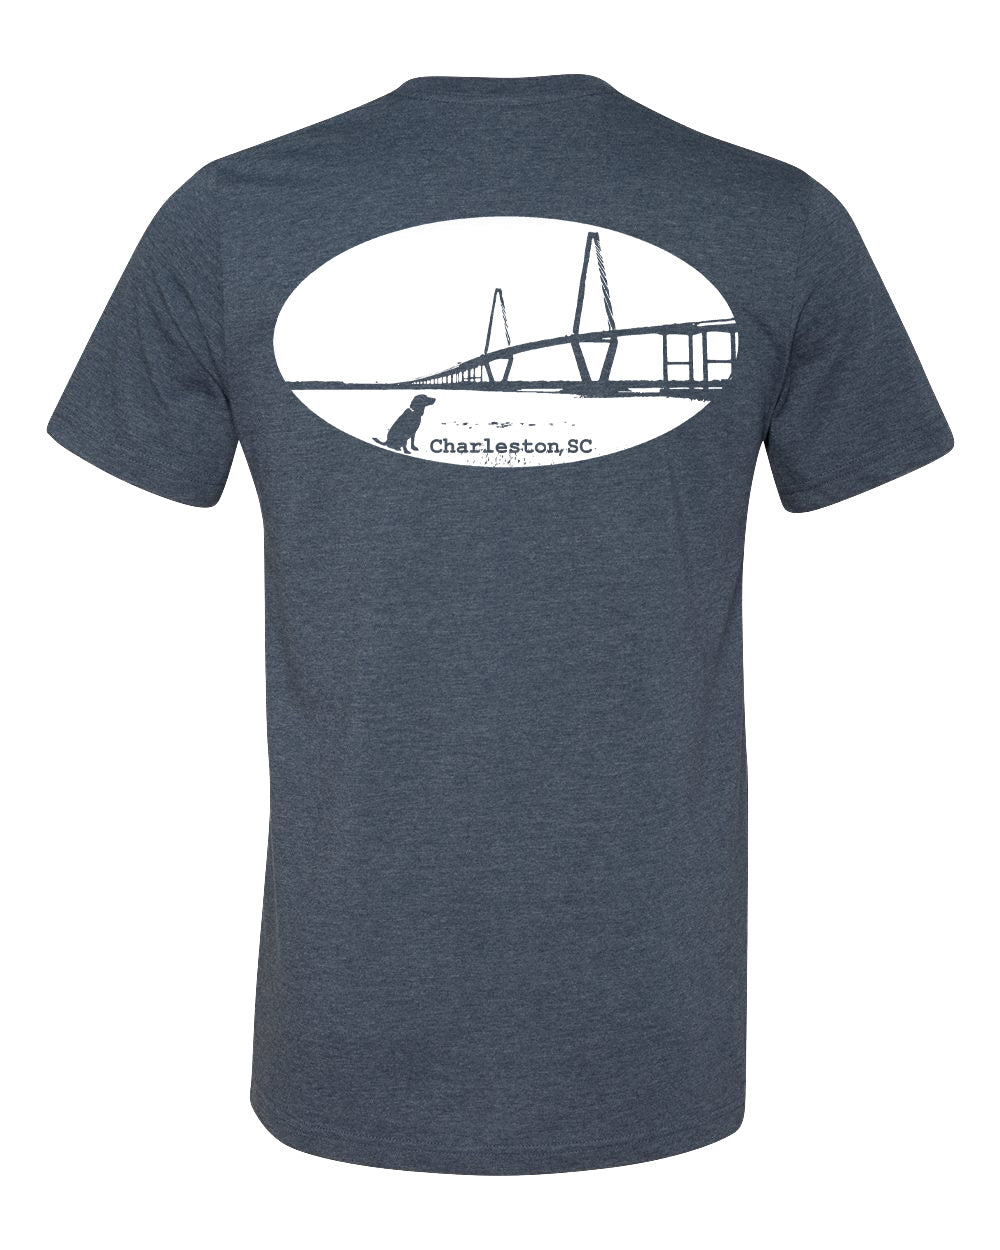 Charleston Ravenel Bridge Short Sleeve T-shirt